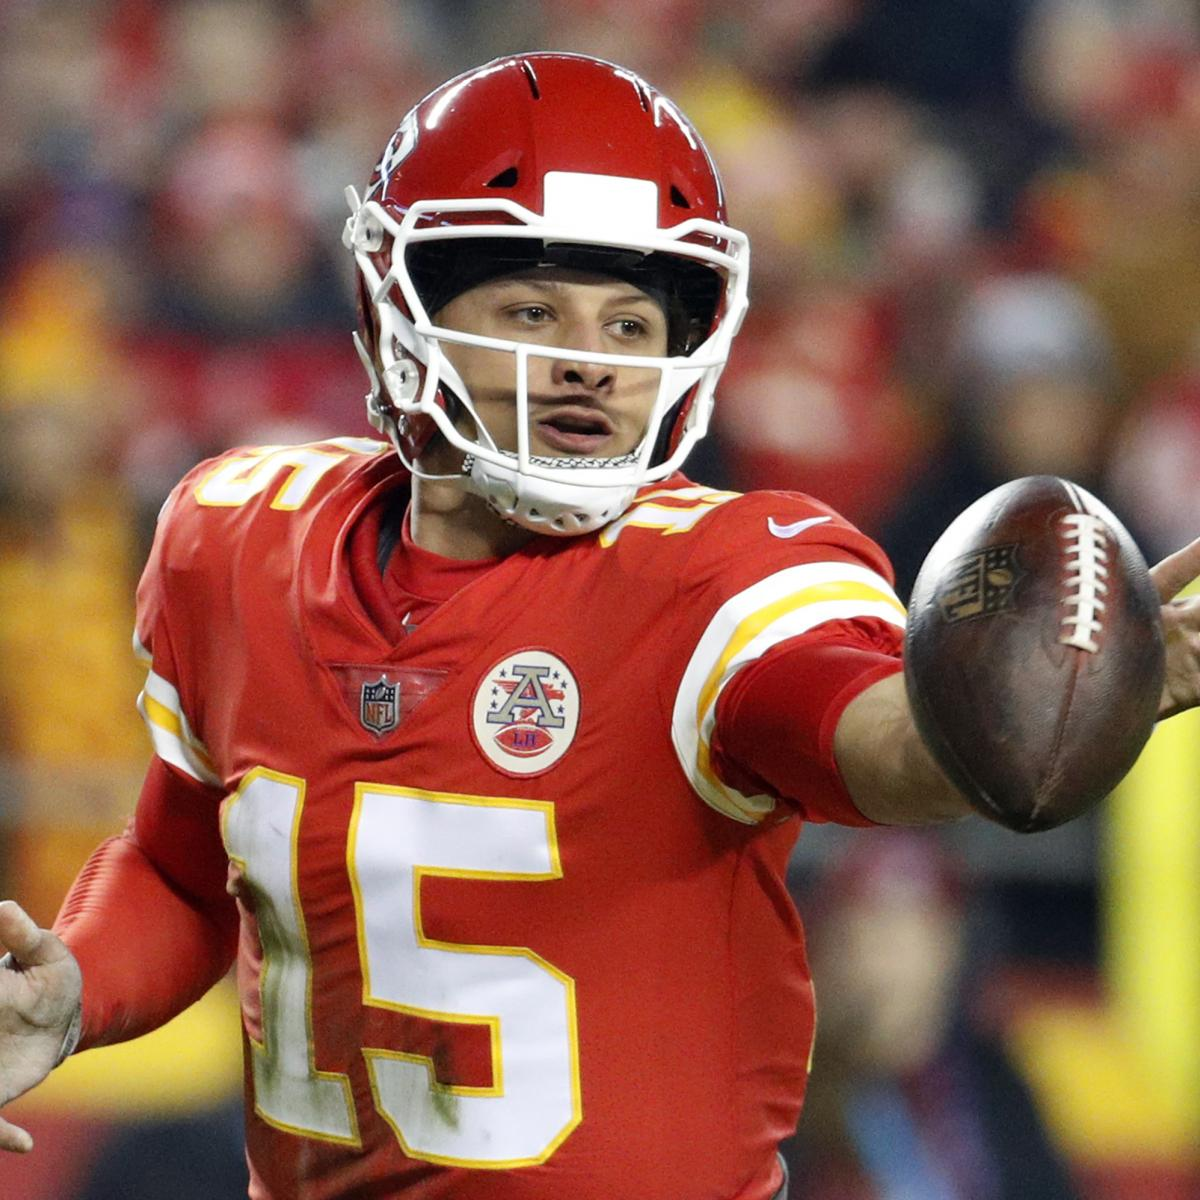 Chiefs  Patrick Mahomes Signs Endorsement Contract with Hunt s Ketchup  6735ef514